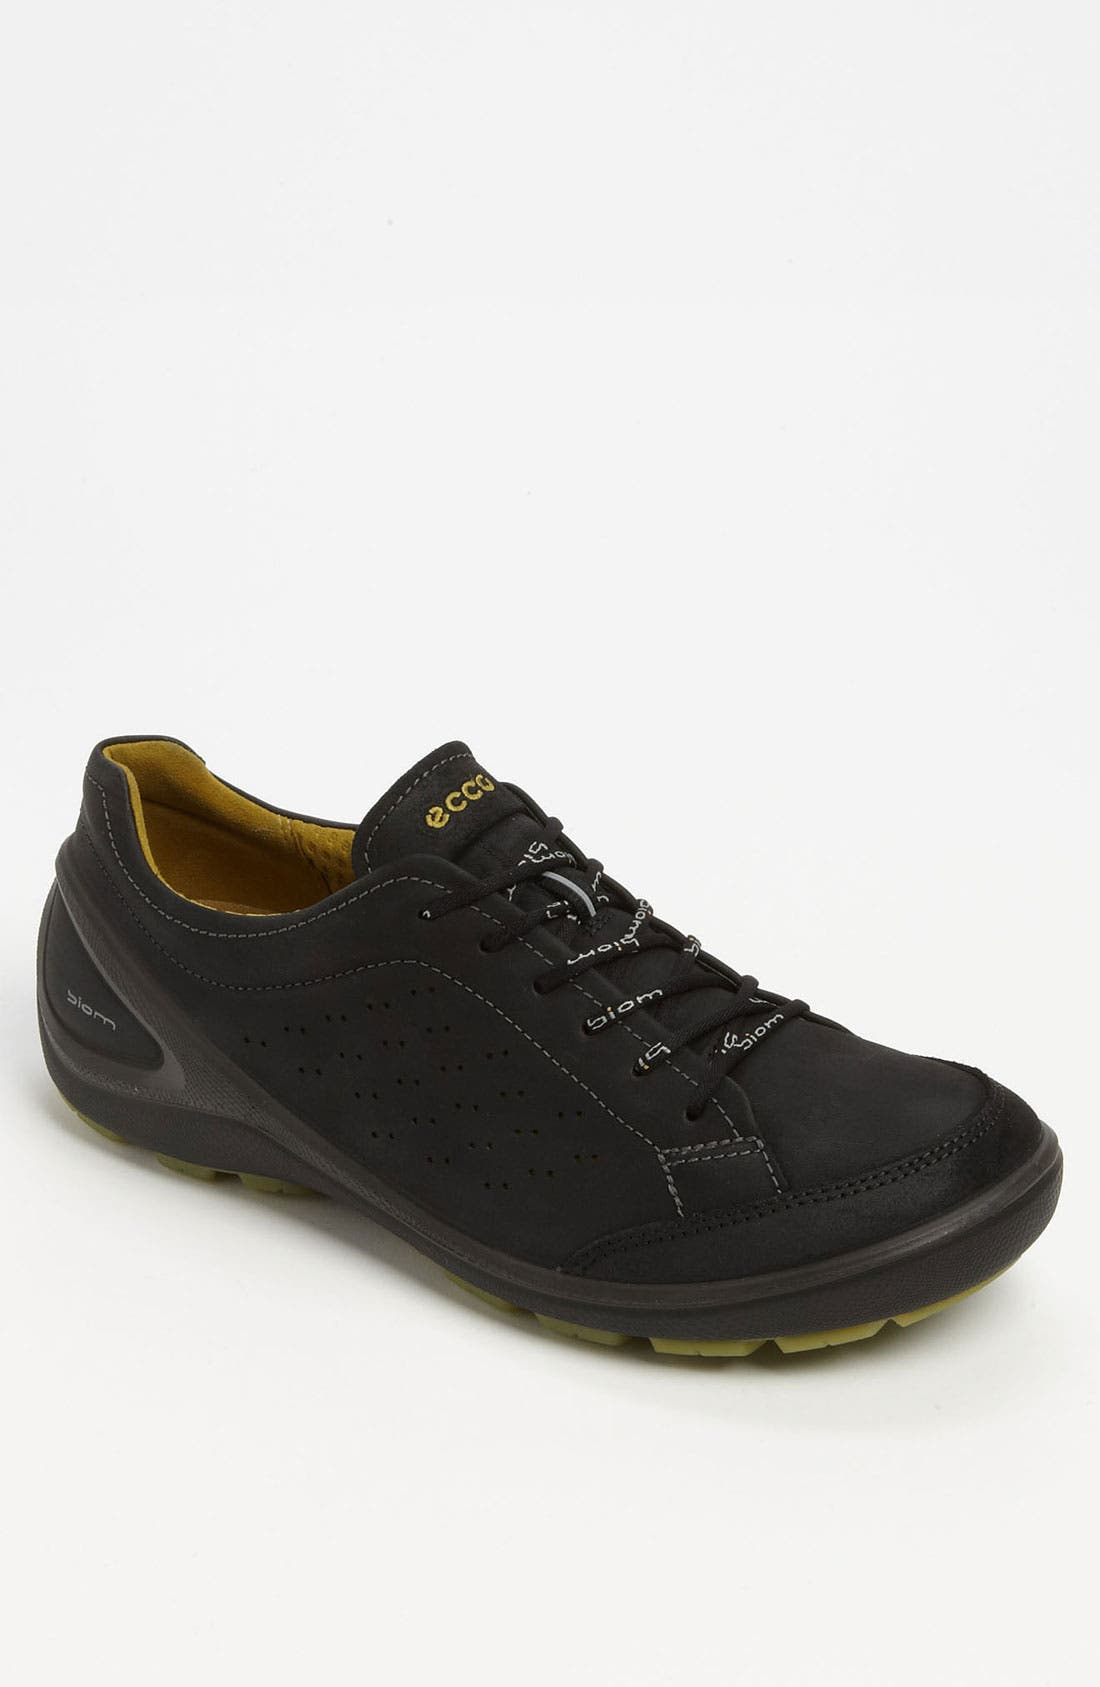 Alternate Image 1 Selected - ECCO 'Biom Grip' Sneaker (Men)